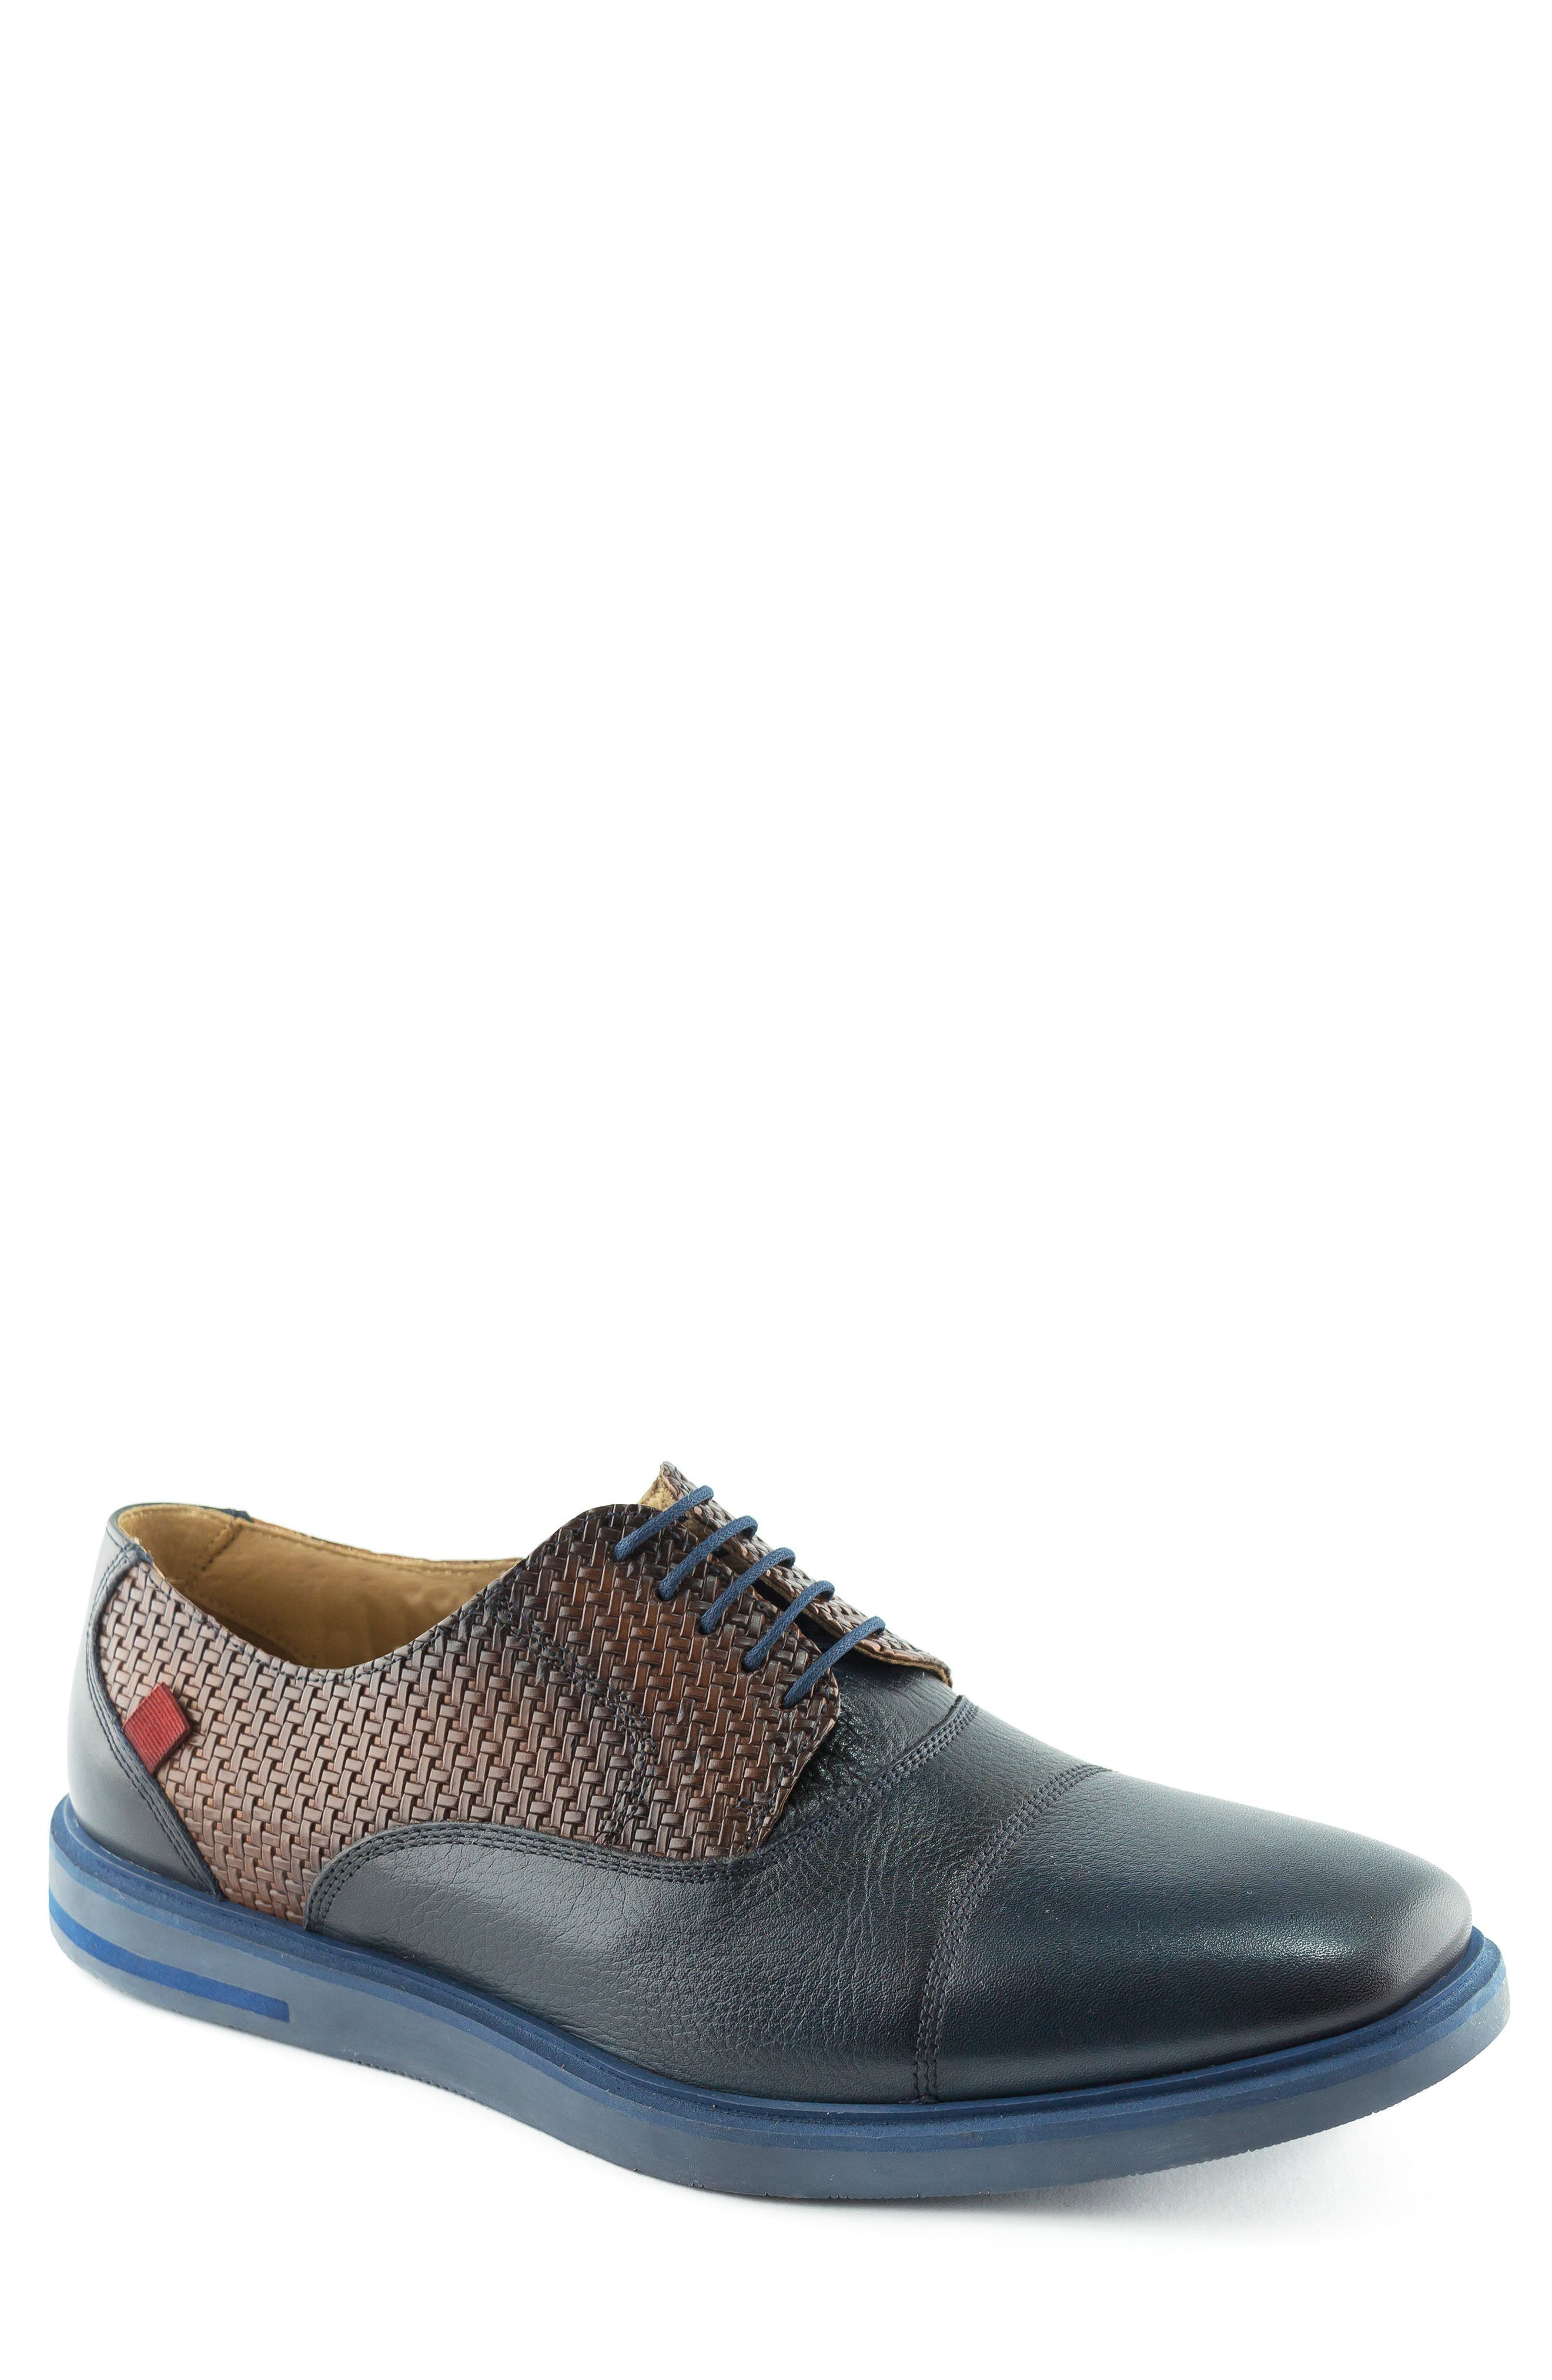 Manhattan Cap Toe Oxford,                             Main thumbnail 1, color,                             Navy Leather